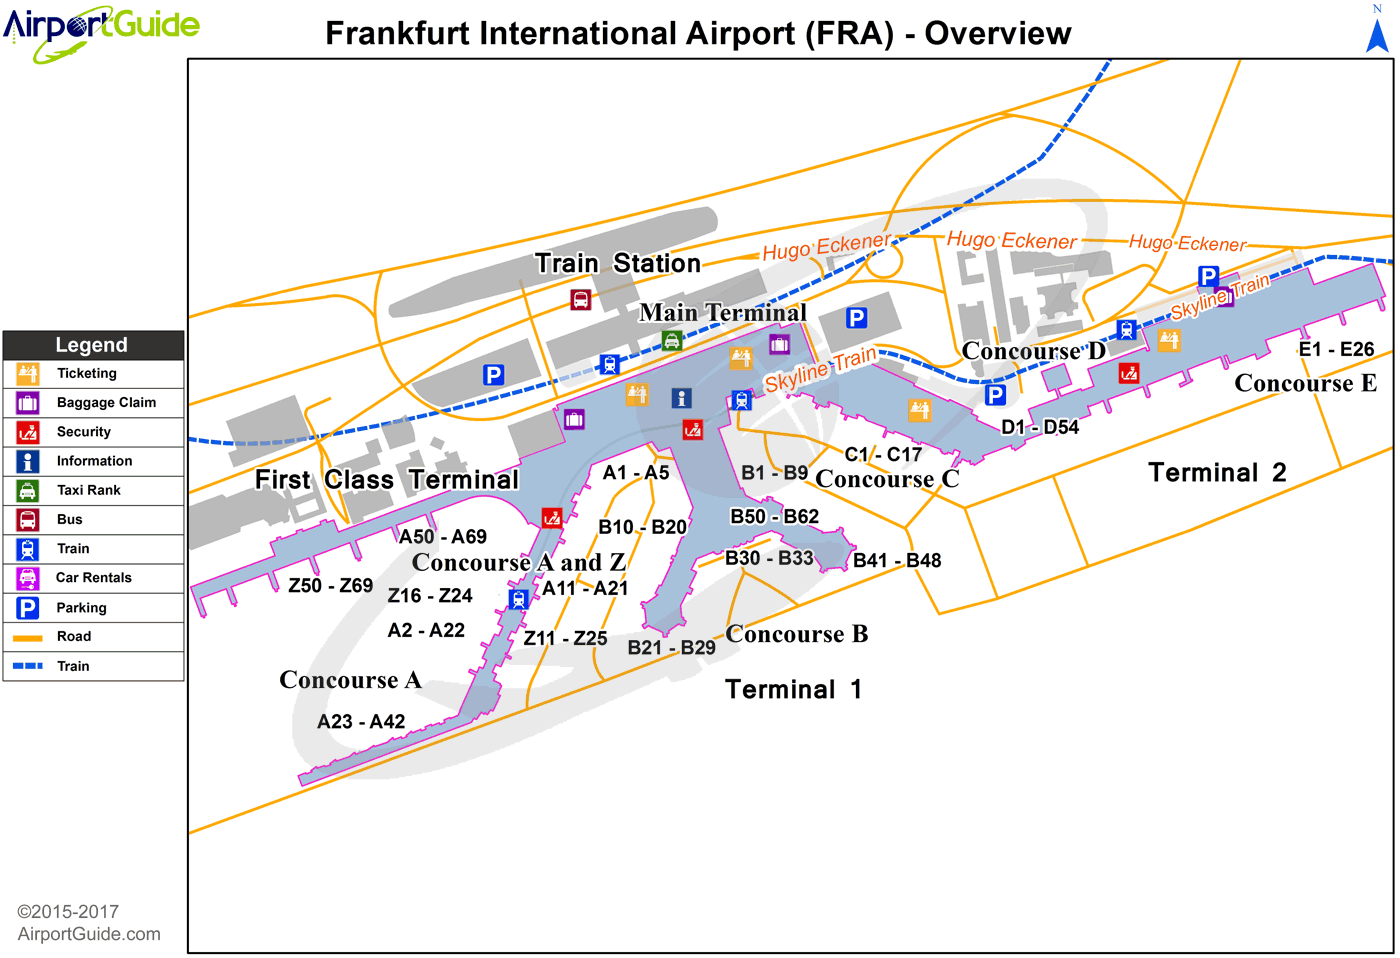 Airport Maps Charts Diagrams Frankfurt am Main International